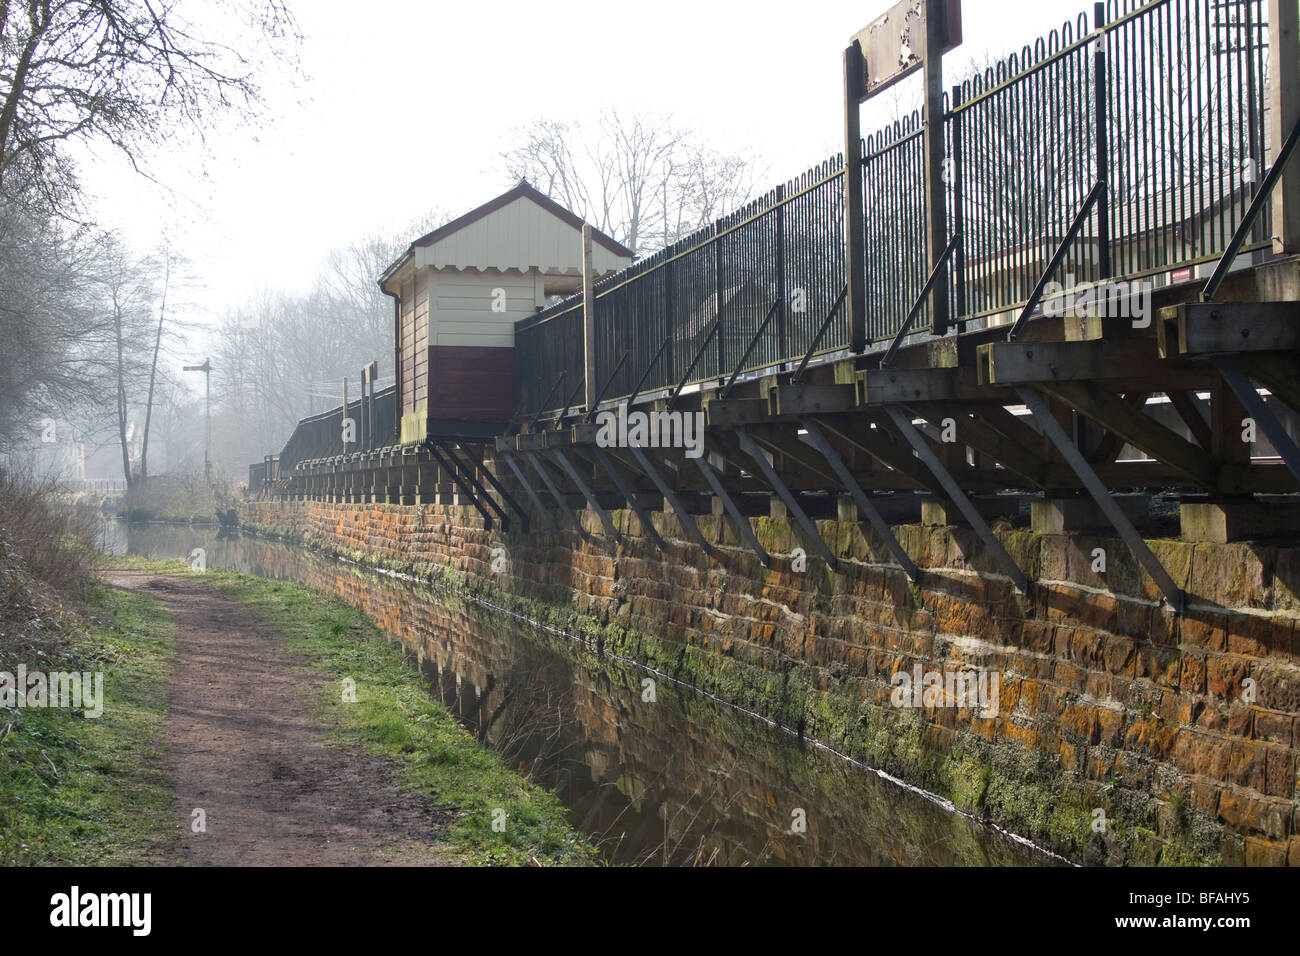 Cauldon canal running alongside Consall railway station - Stock Image